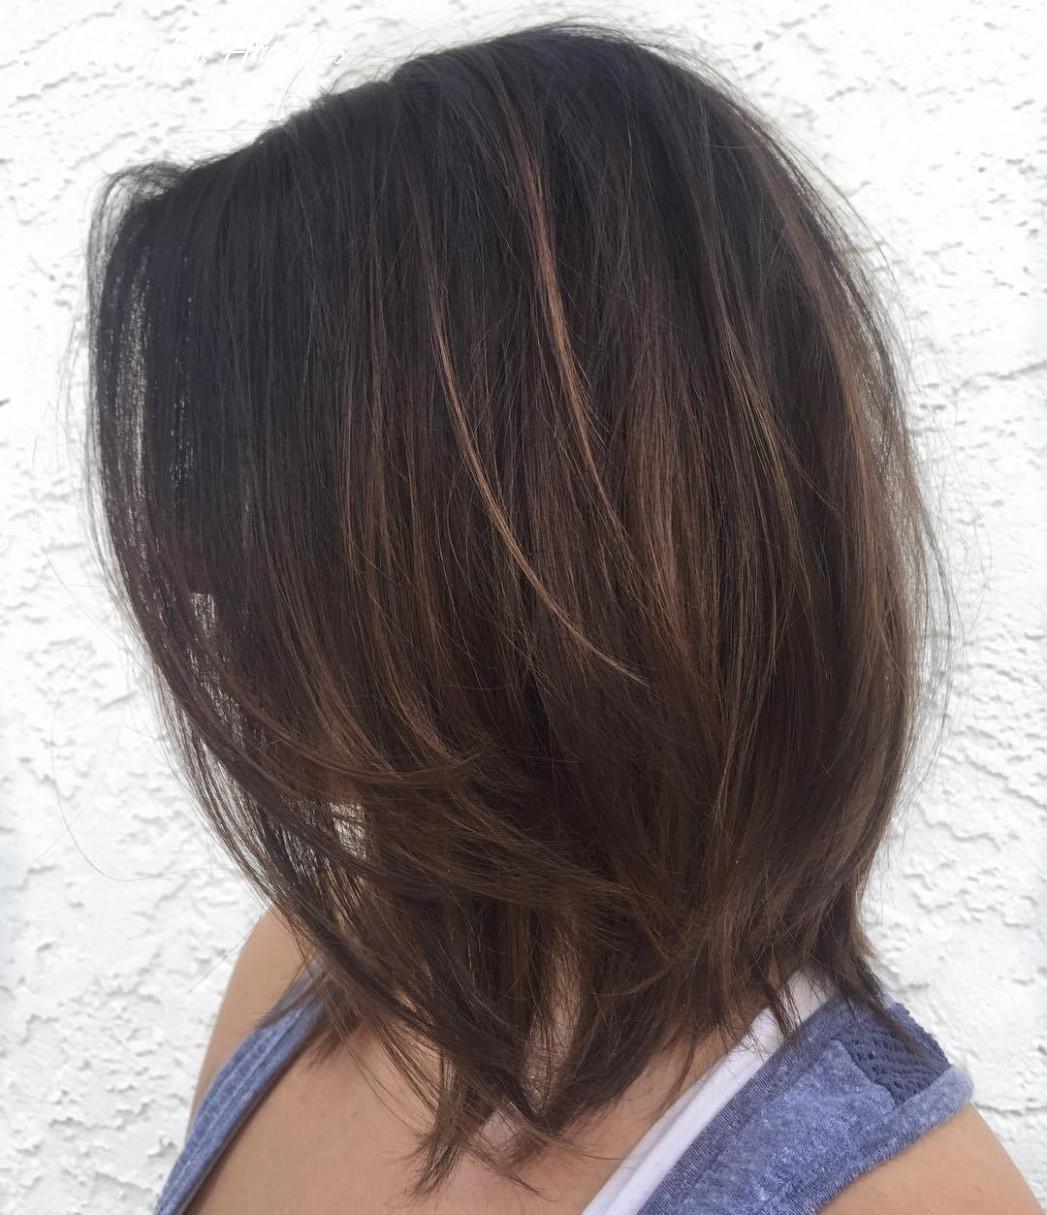 11 Perfect Medium Length Hairstyles for Thin Hair in 11